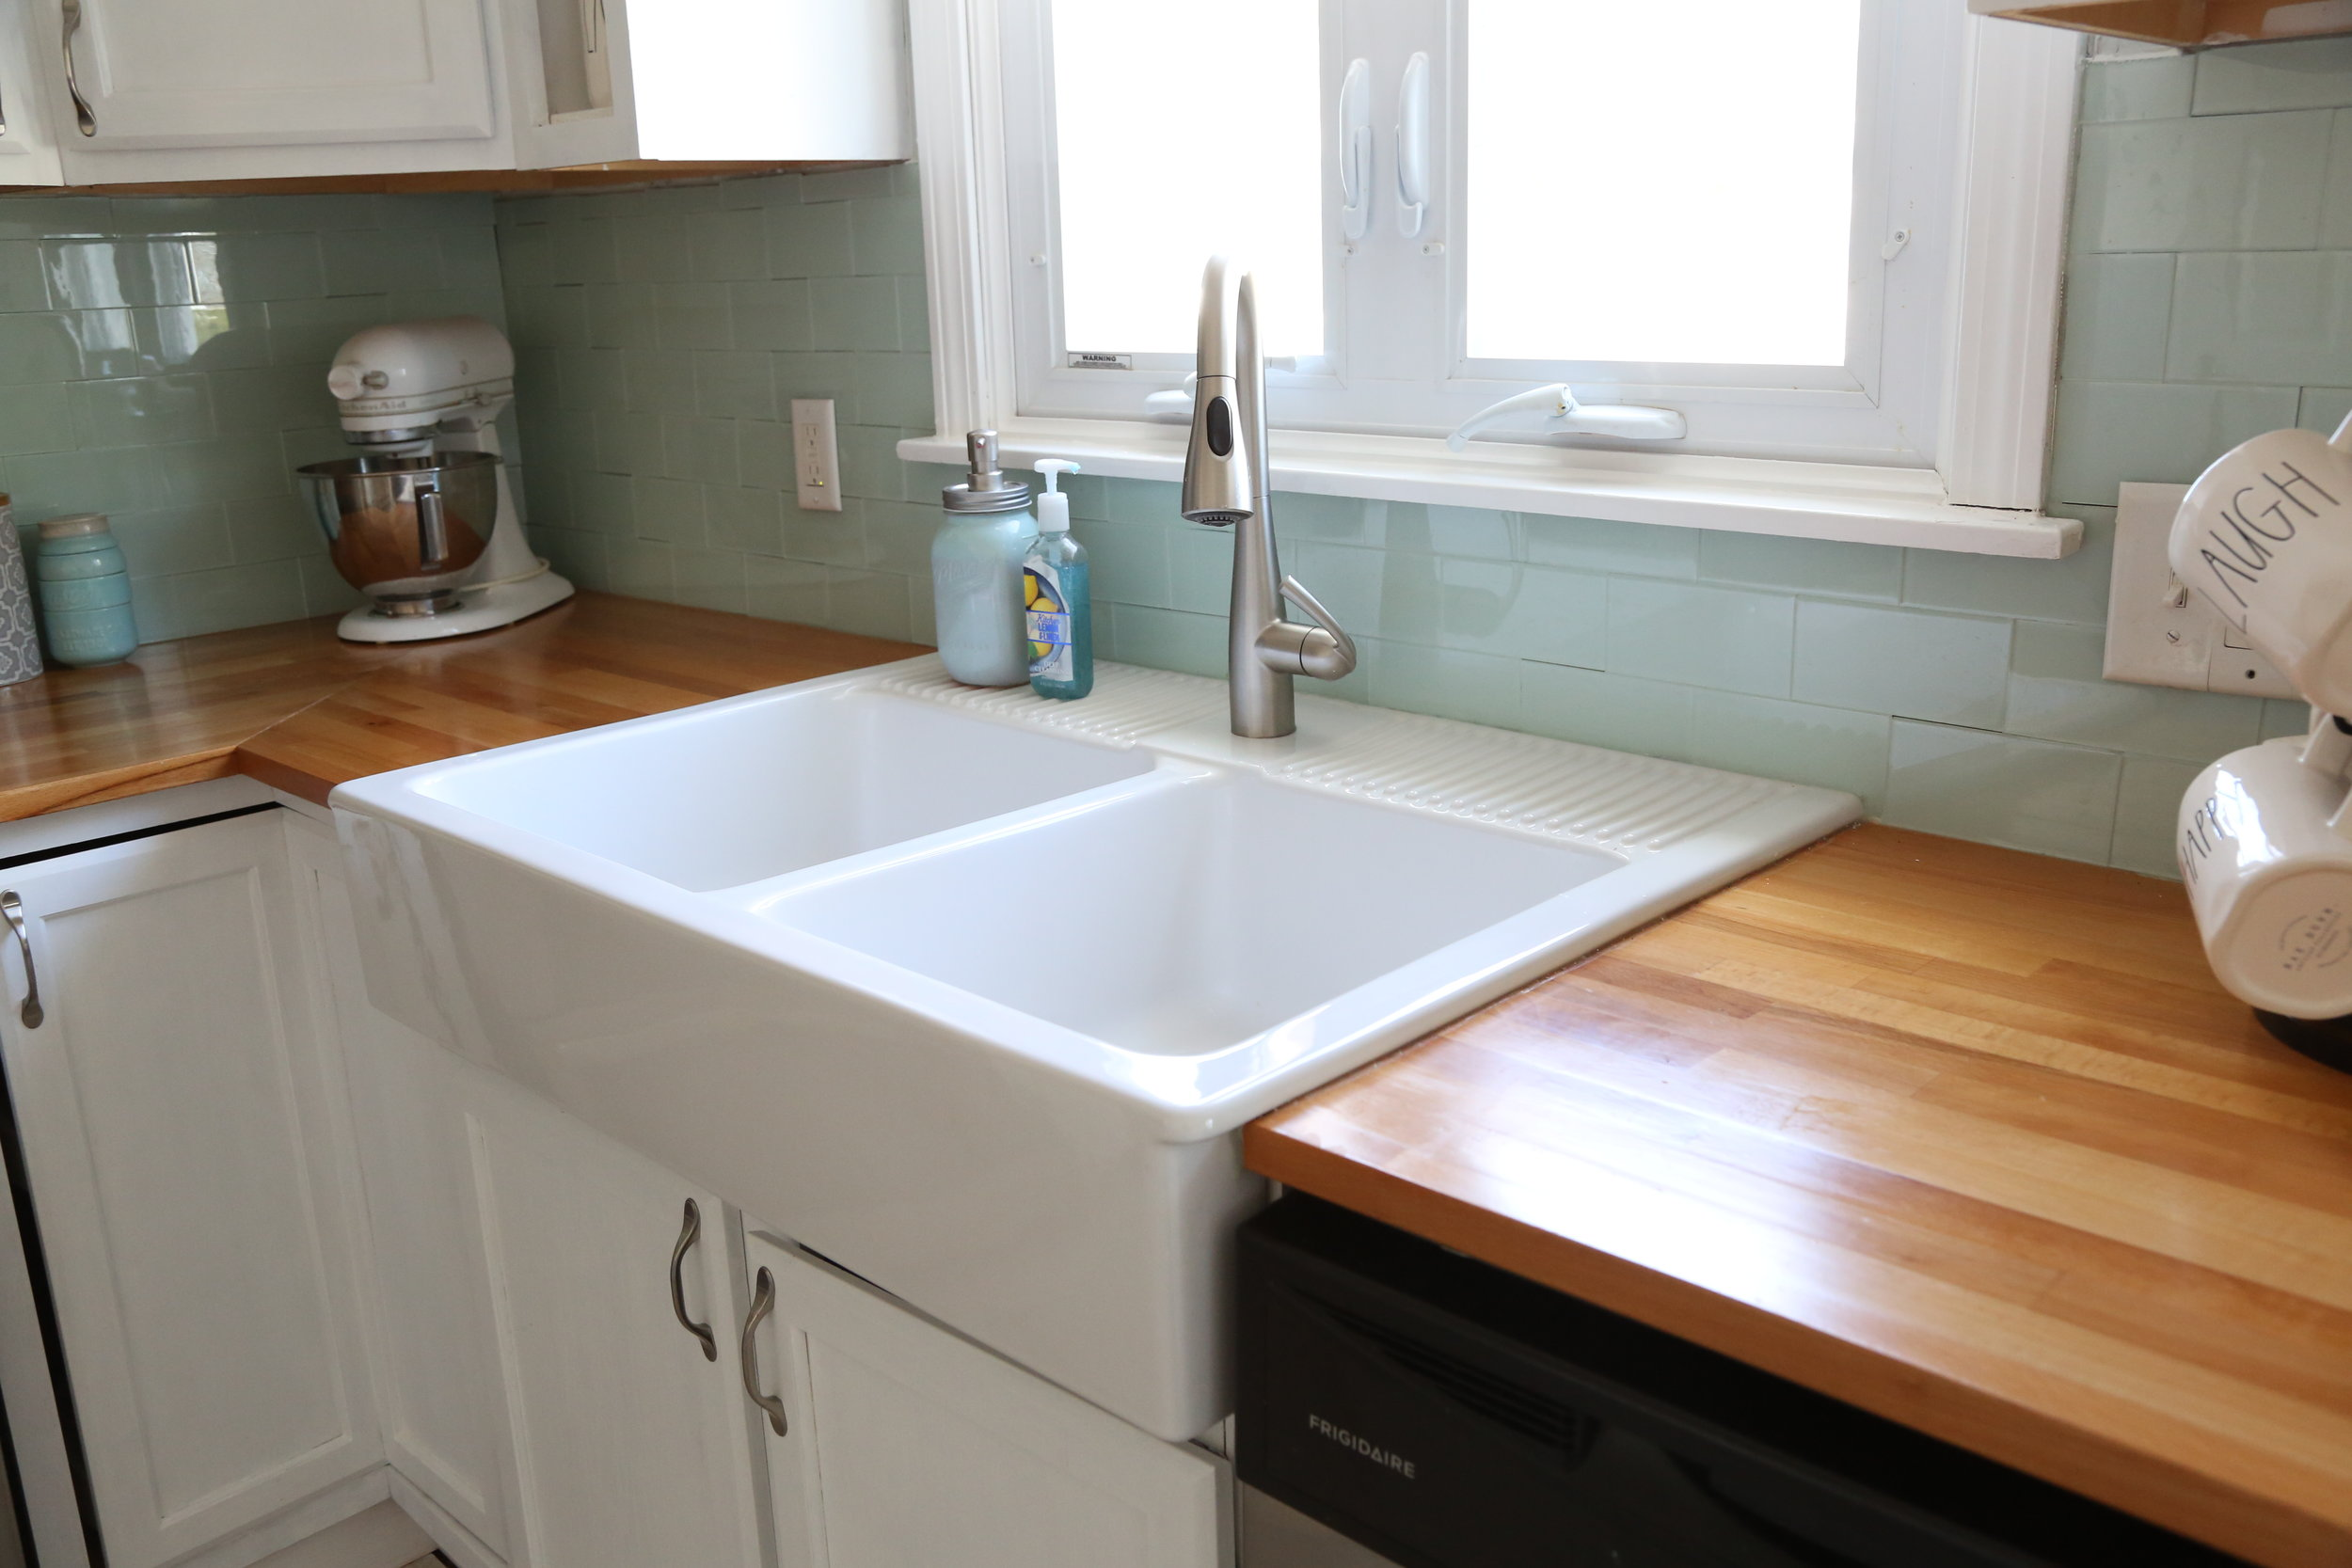 Ikea Domsjo Farmhouse Sink 1 Year Review